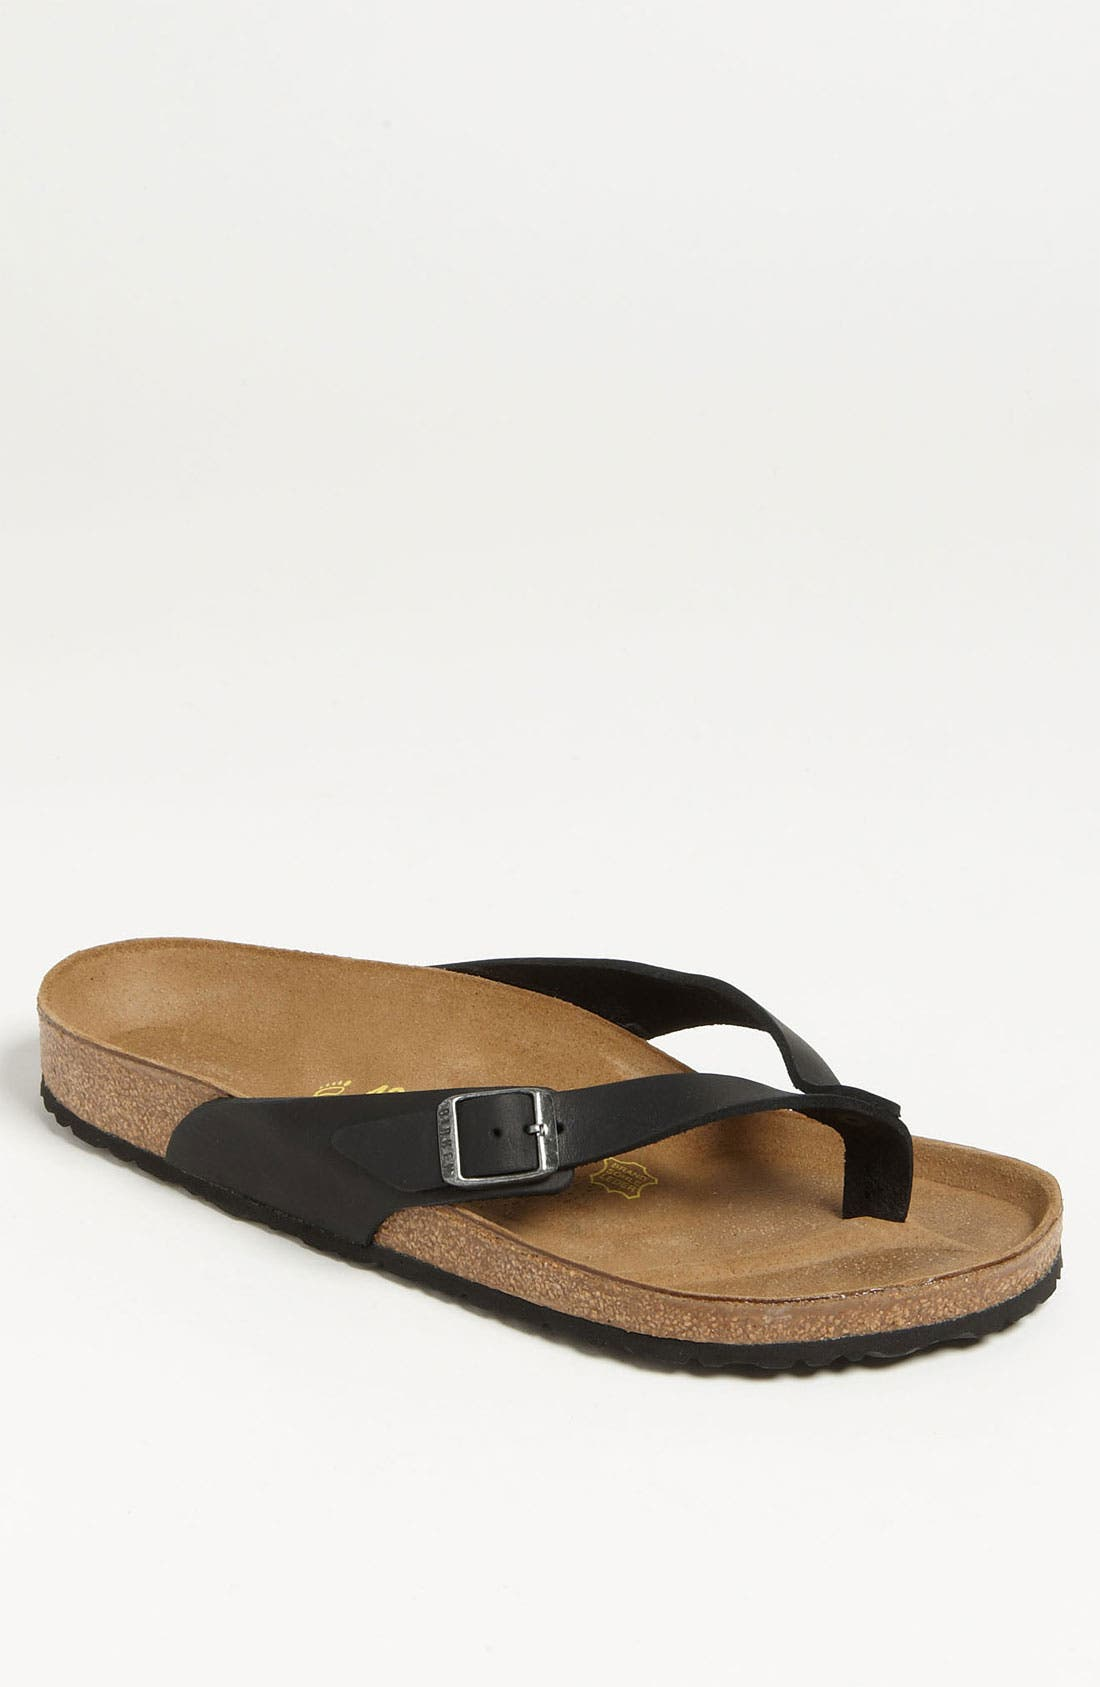 'Adria' Sandal, Main, color, 001